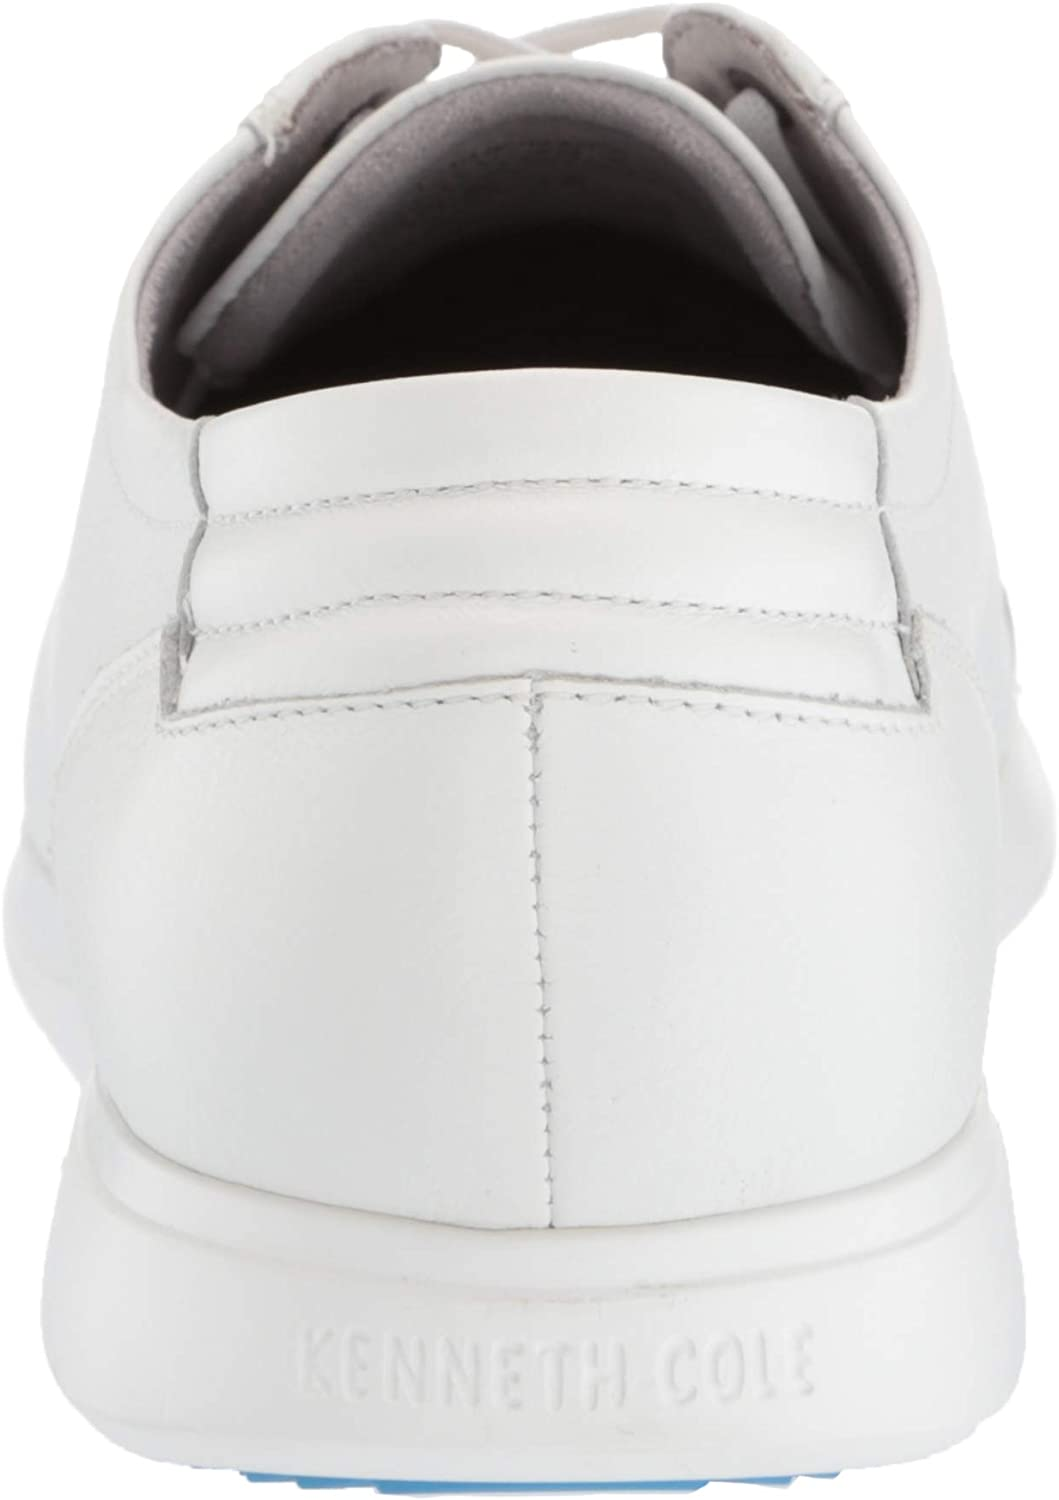 Kenneth Cole New York Rocketpod Baskets B pour Homme Blanc Cassé